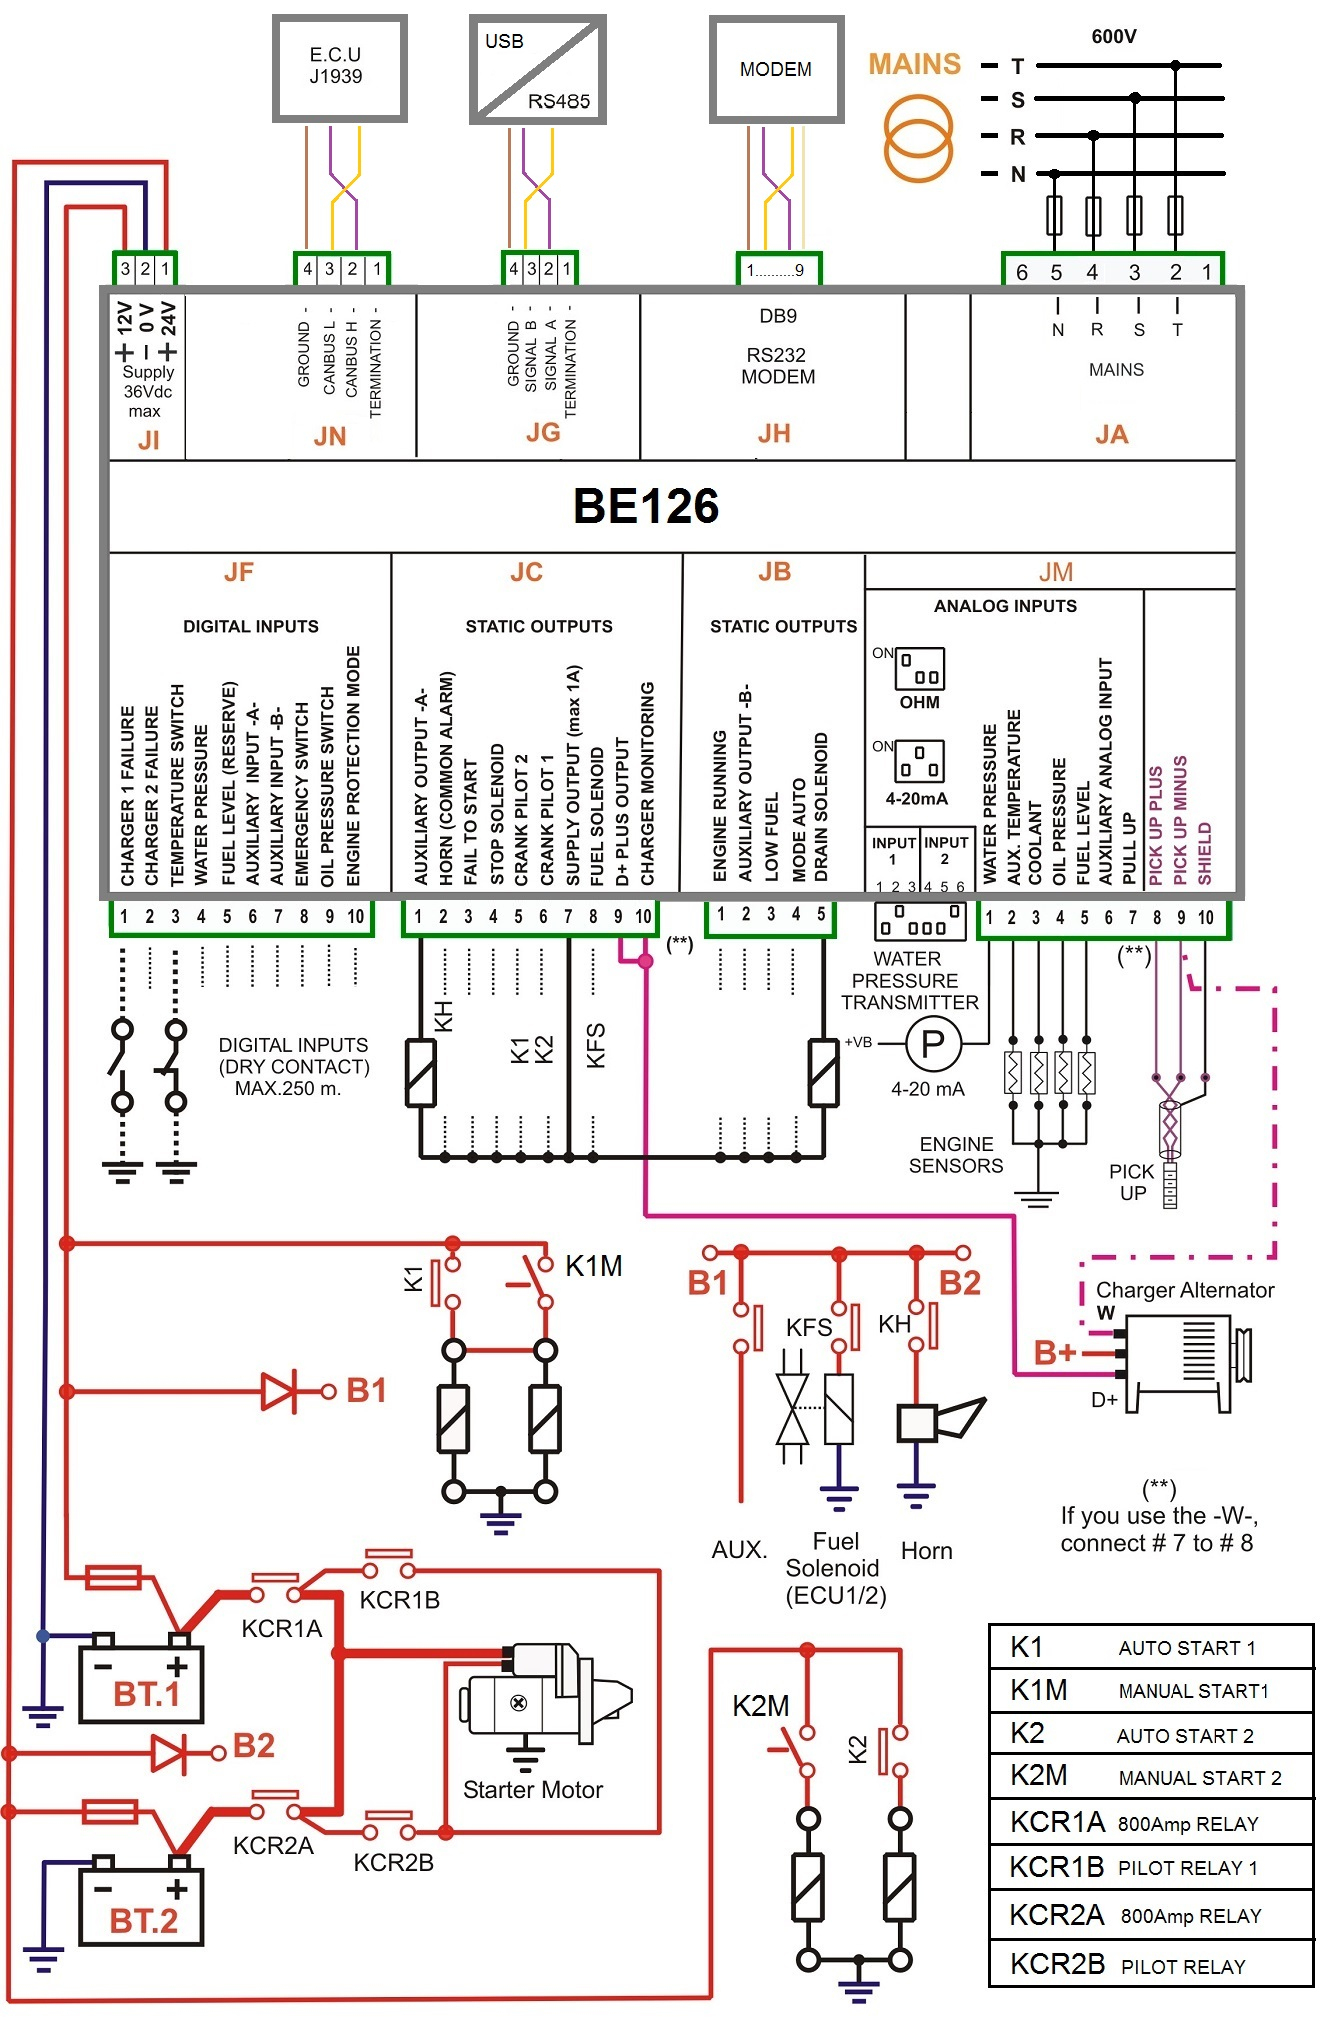 220 Pump Wire Diagram | Manual E-Books - 220V Pool Pump Wiring Diagram